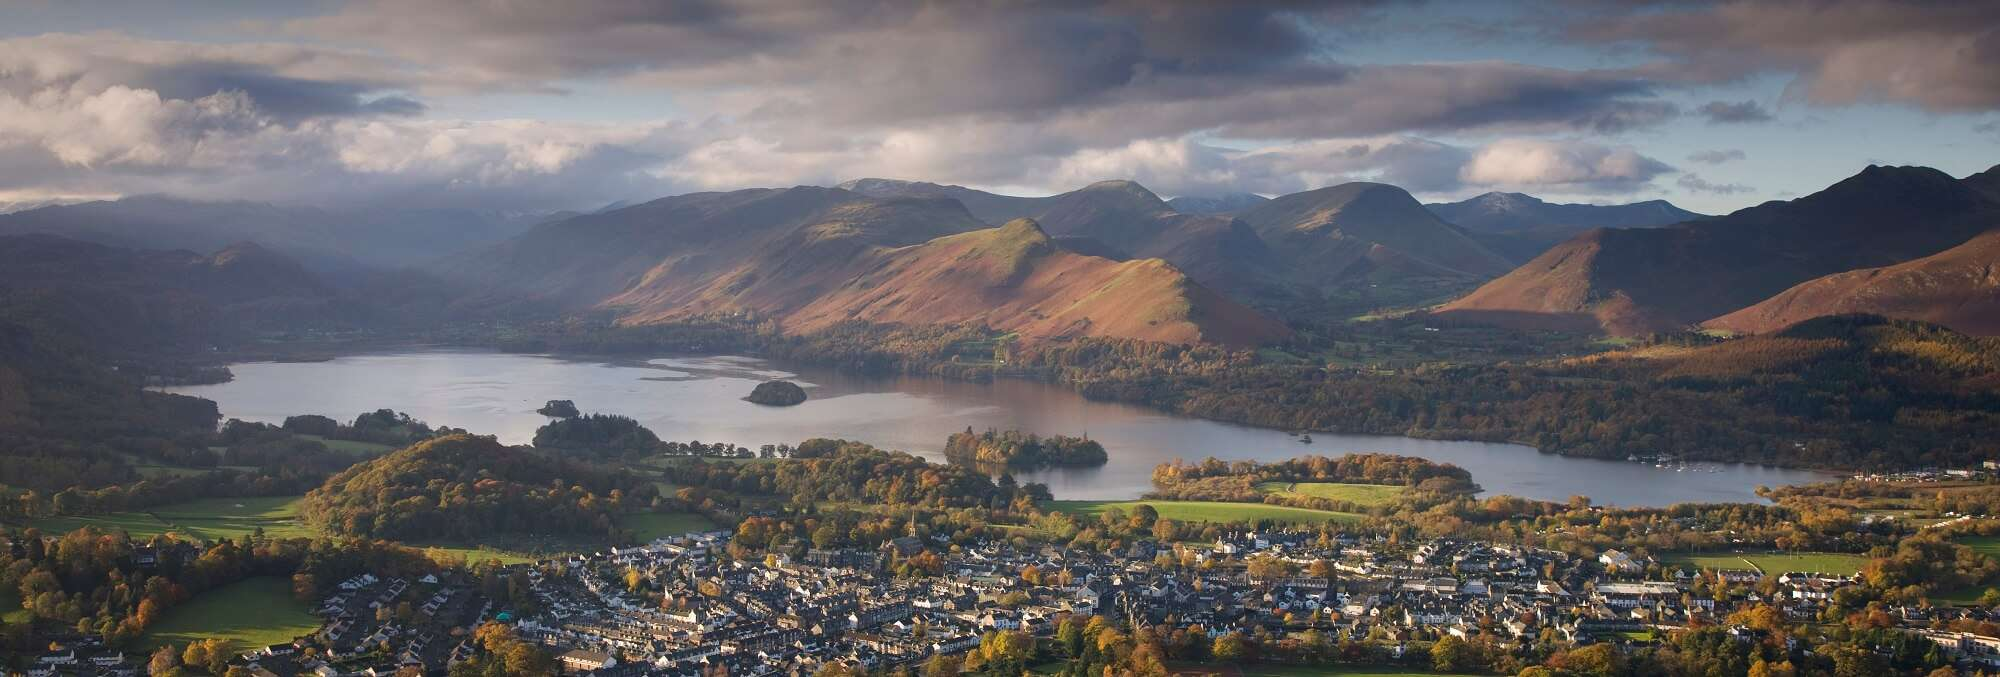 Latrigg near Keswick with Derwentwater lake in the far distance